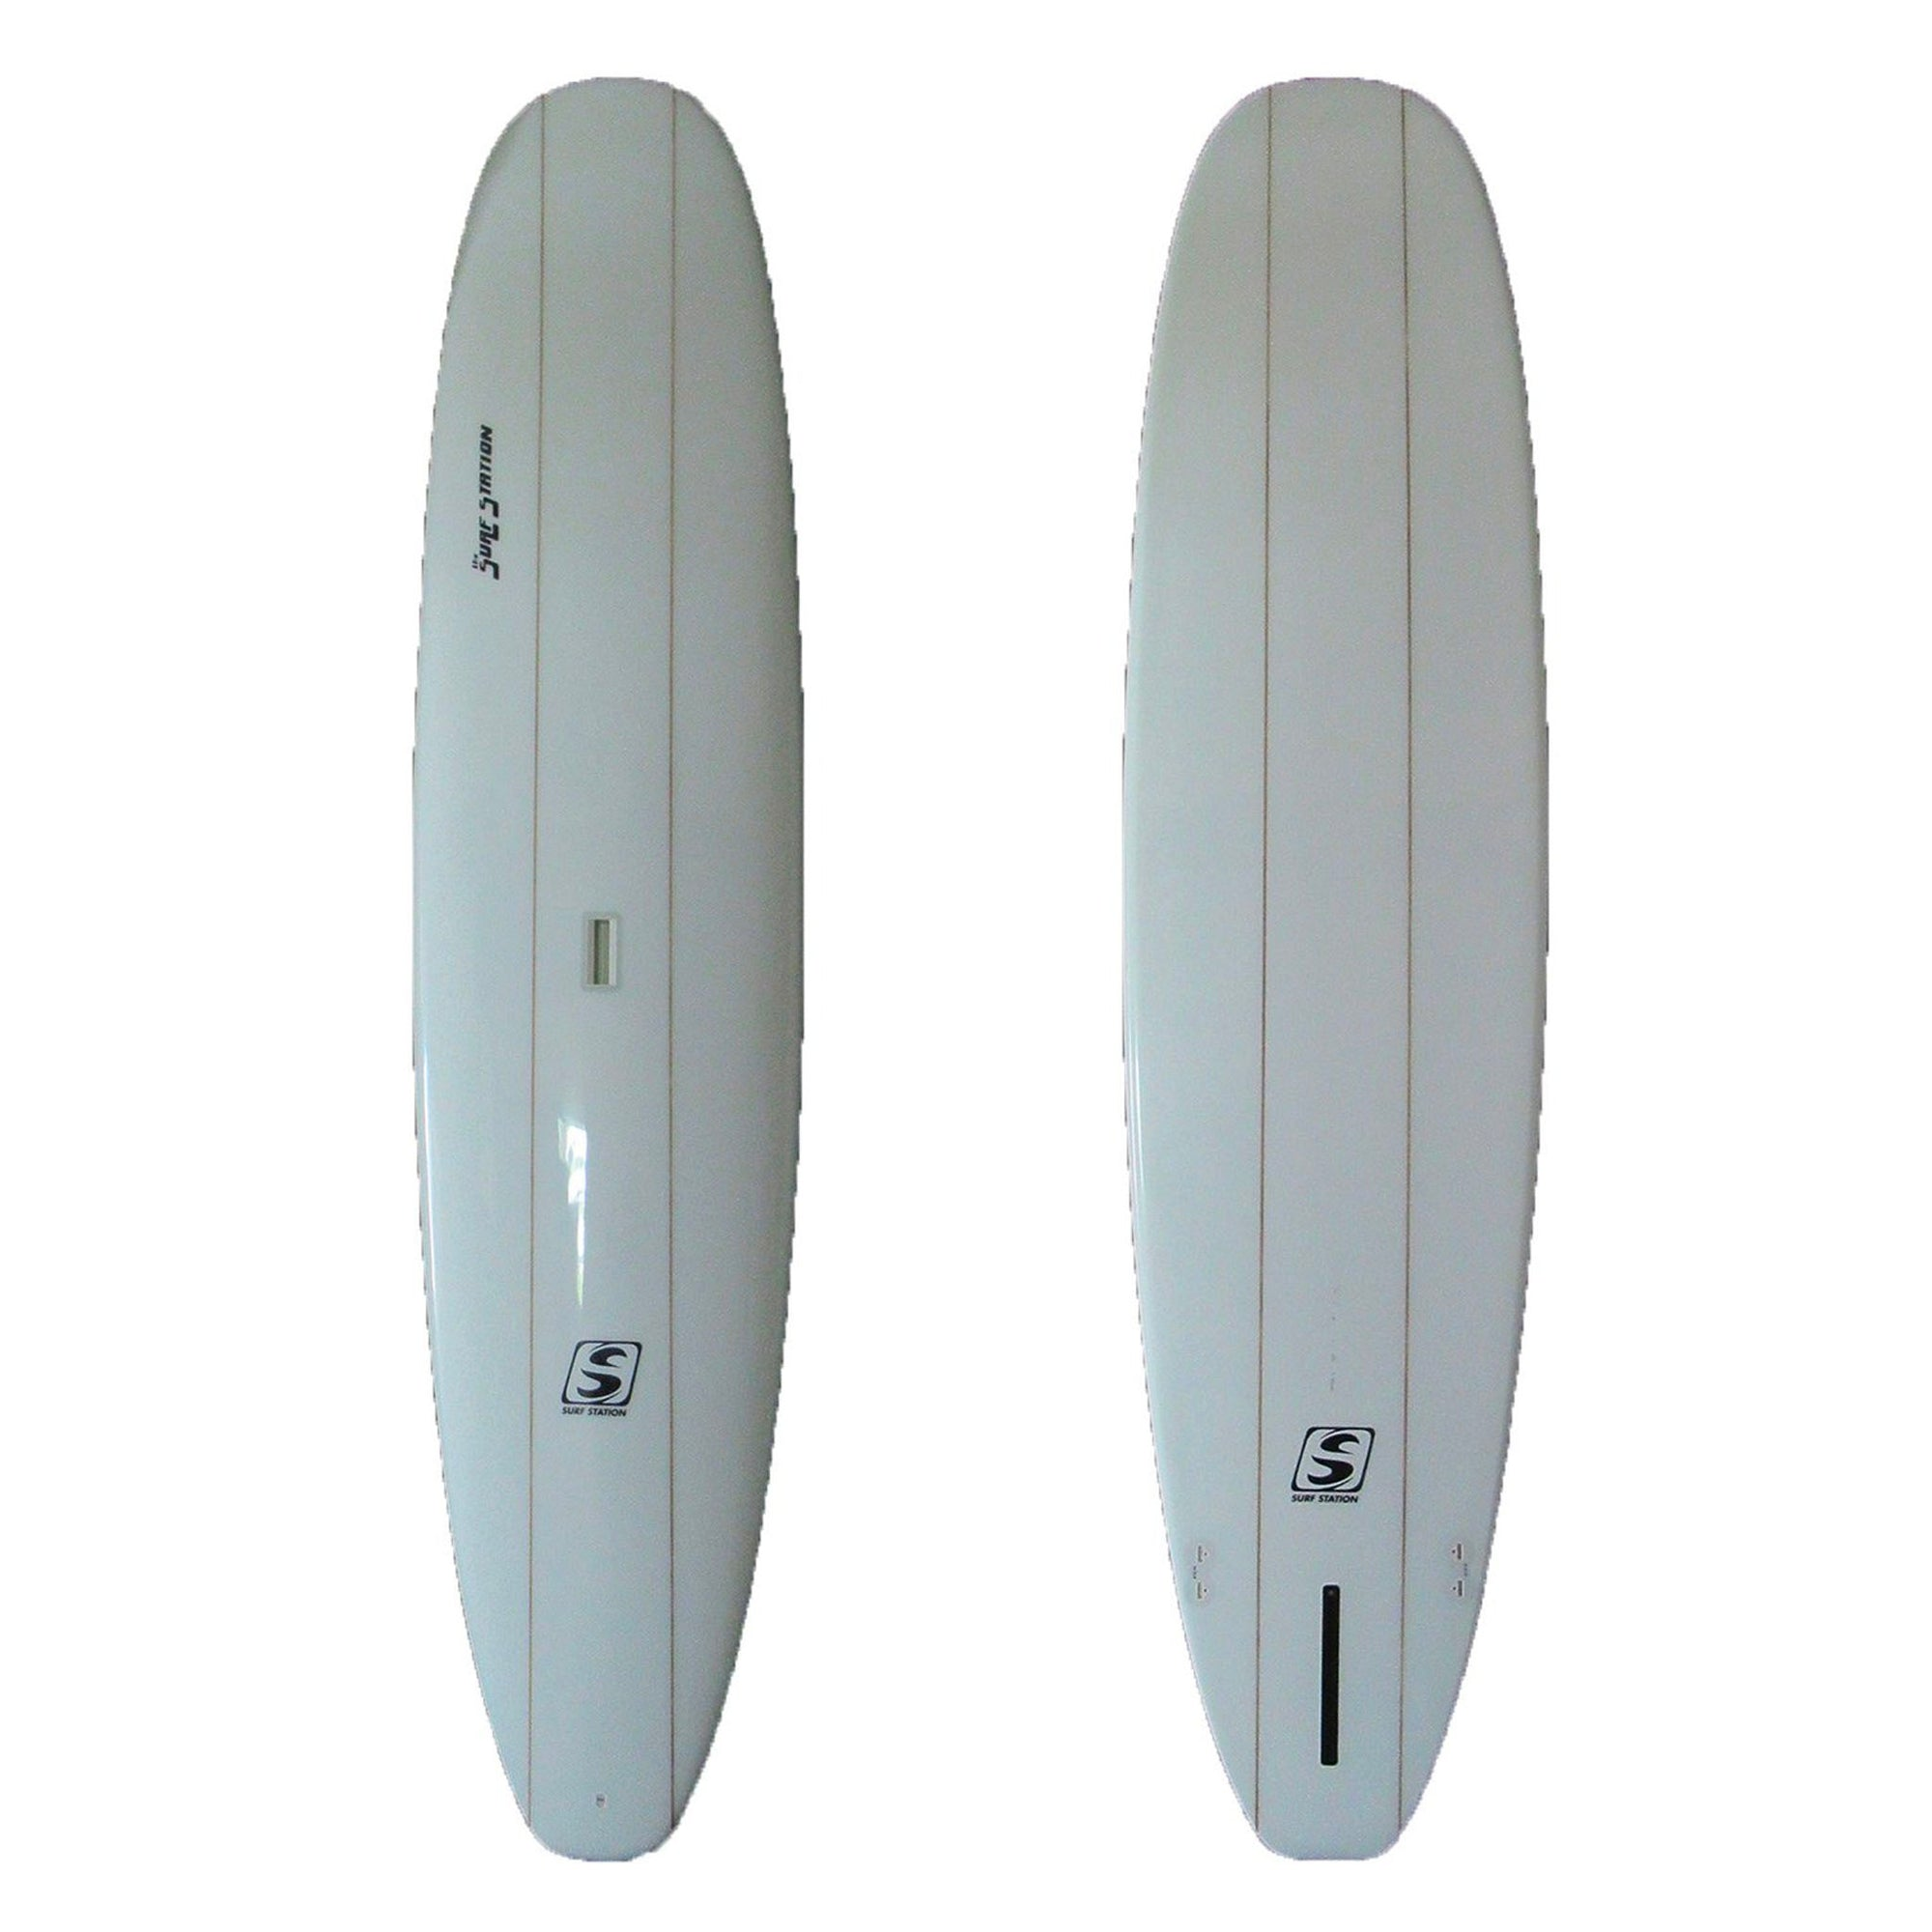 Surf Station Super Wide EPS Surfboard